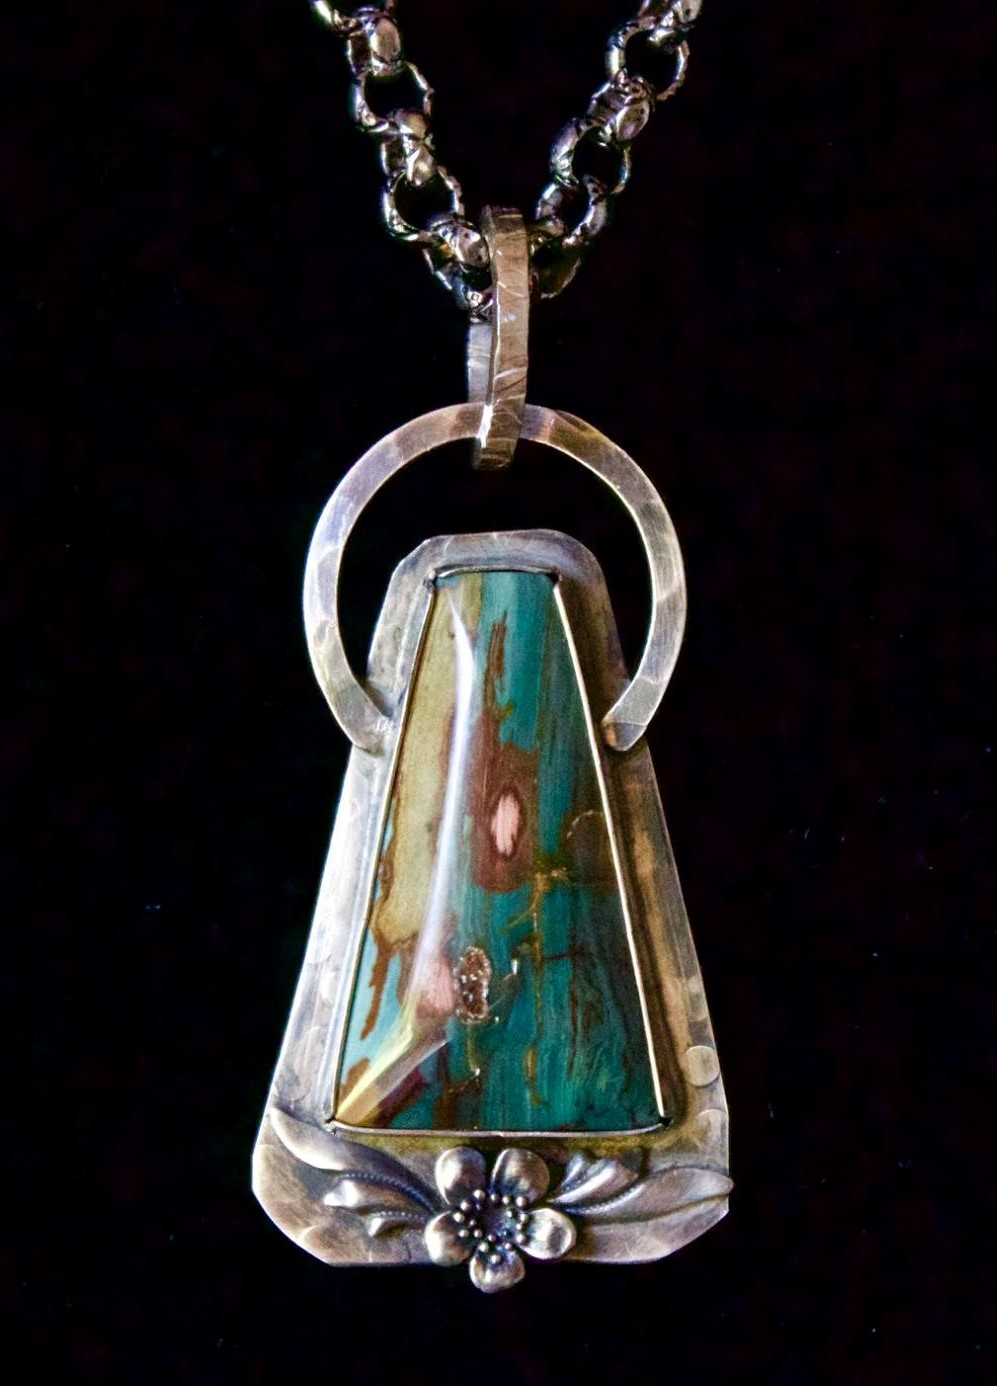 """Once In A Lullaby"" Pendant.  Gary Green Jasper!  Found in eastern Oregon, iron, aluminum, potassium, sodium and calcium – along with petrified wood, cane, cattails and swamp creatures – combine to create stones that range in color from teal to lime green. Read more about this jasper at  http://dirtyoldrockhound.blogspot.com/2013/09/gary-green-jasper-aka-larsonite-green.htm  The beautiful colors, patterns and layers in this particular Gary Green Jasper elicits comments from Becky Gann :    This one is Truly Exceptional...The WOW FACTOR  😲😲😎😍😍🤩🤩  Rick Munger:   Beautiful piece wow   Virginia B. Smith:   Awesome !!   Jessie Heinrichs:   Another WOW   Peggy Simpson:   Breathtaking   Sue Few:   Just splendid!"